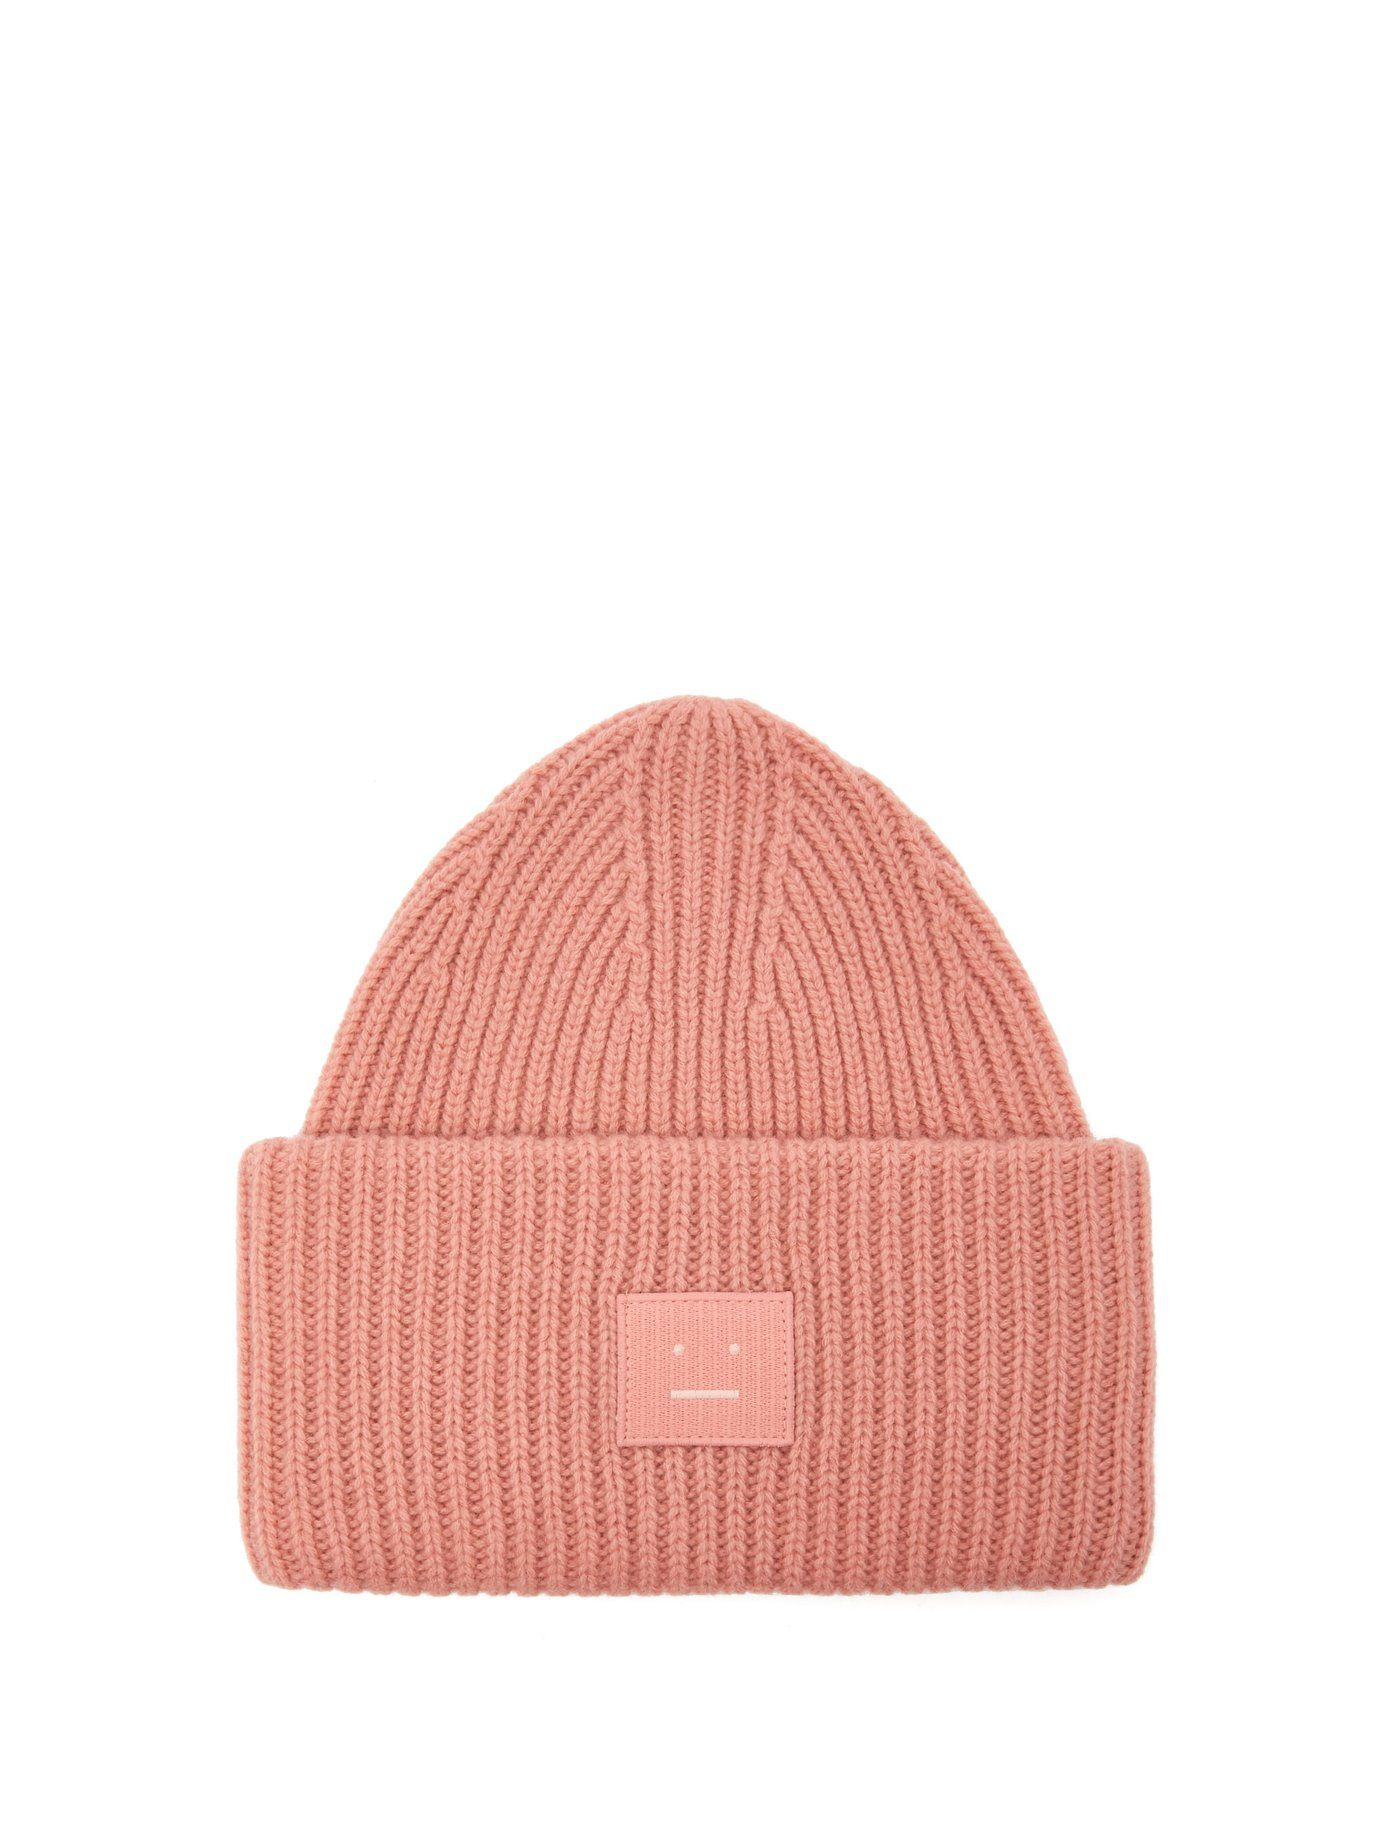 50f07c3c0 Pansy S Face ribbed-knit beanie hat   Acne Studios   MATCHESFASHION ...